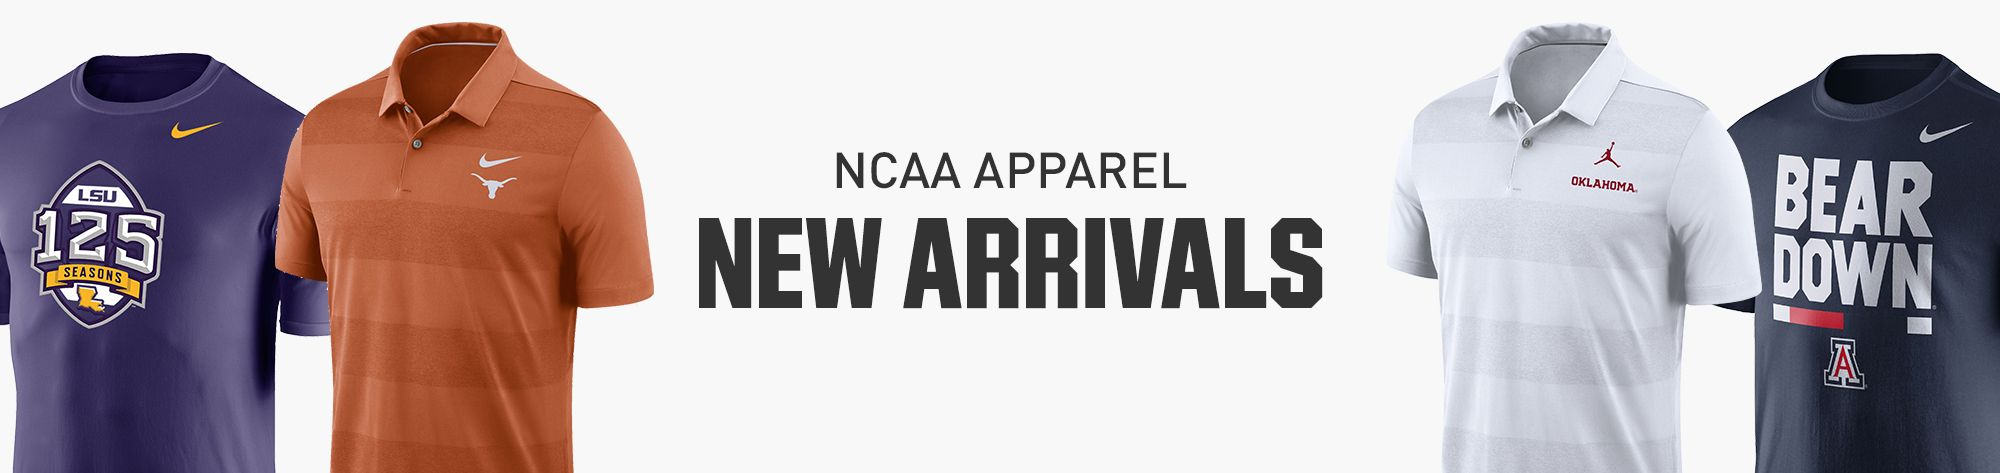 New NCAA Apparel - Shop Now